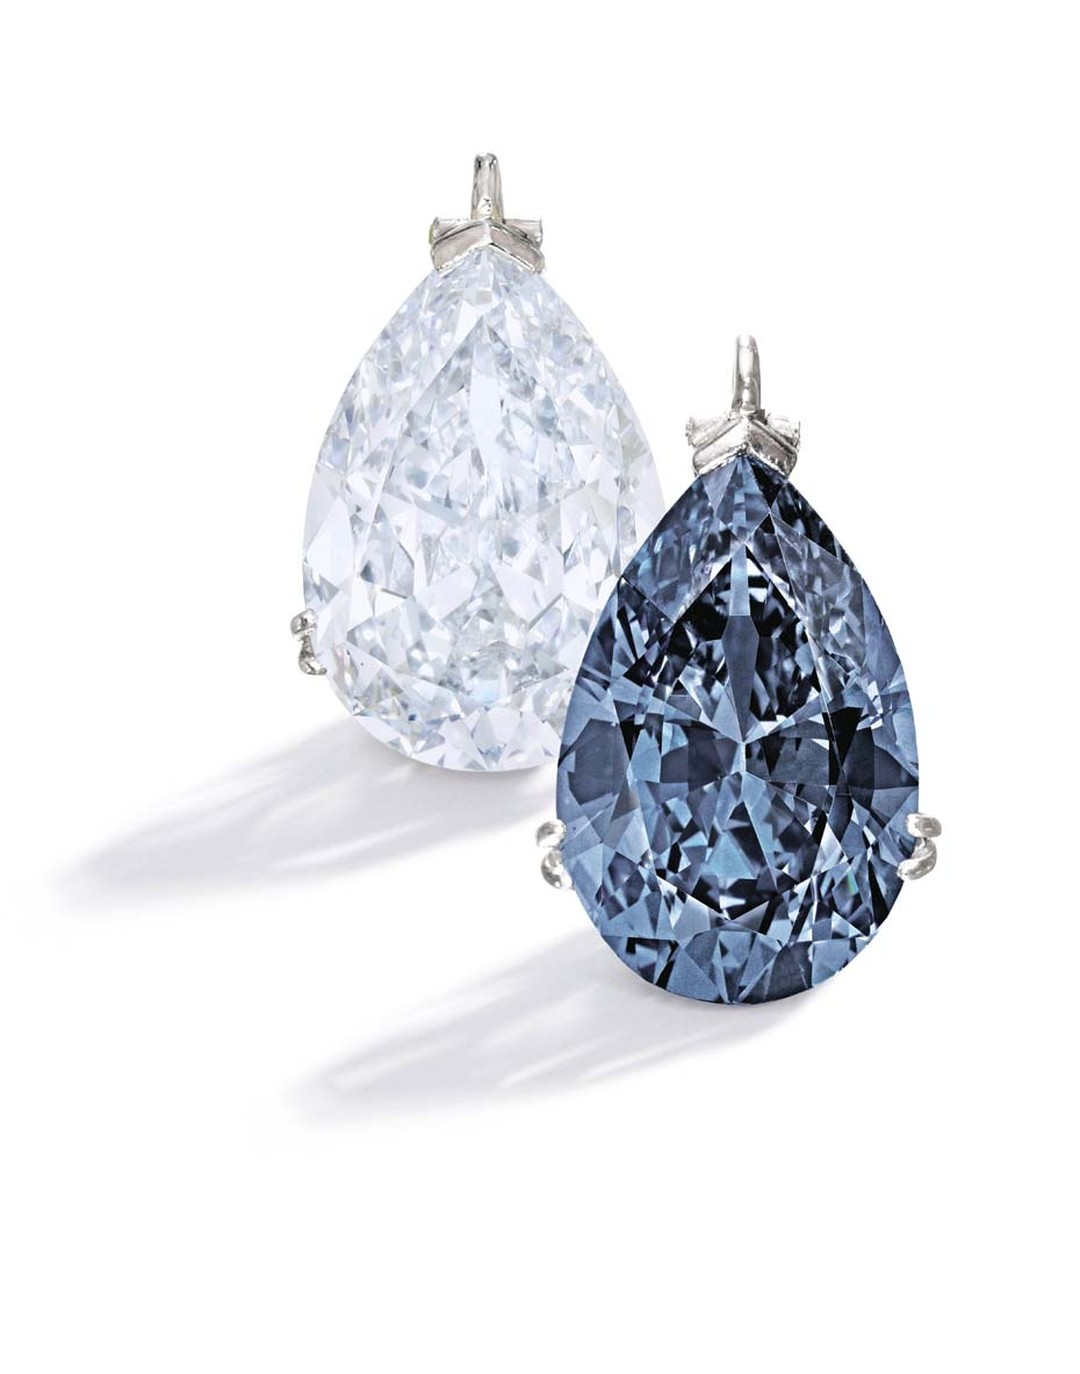 Bunny Mellon's jewelry collection, which will be auctioned by Sotheby's New York on 20 November 2014, includes two platinum mounted blue diamond pendants. One is an important 9.15ct Fancy Blue diamond, left, and the other a magnificent and rare 9.74ct Fan